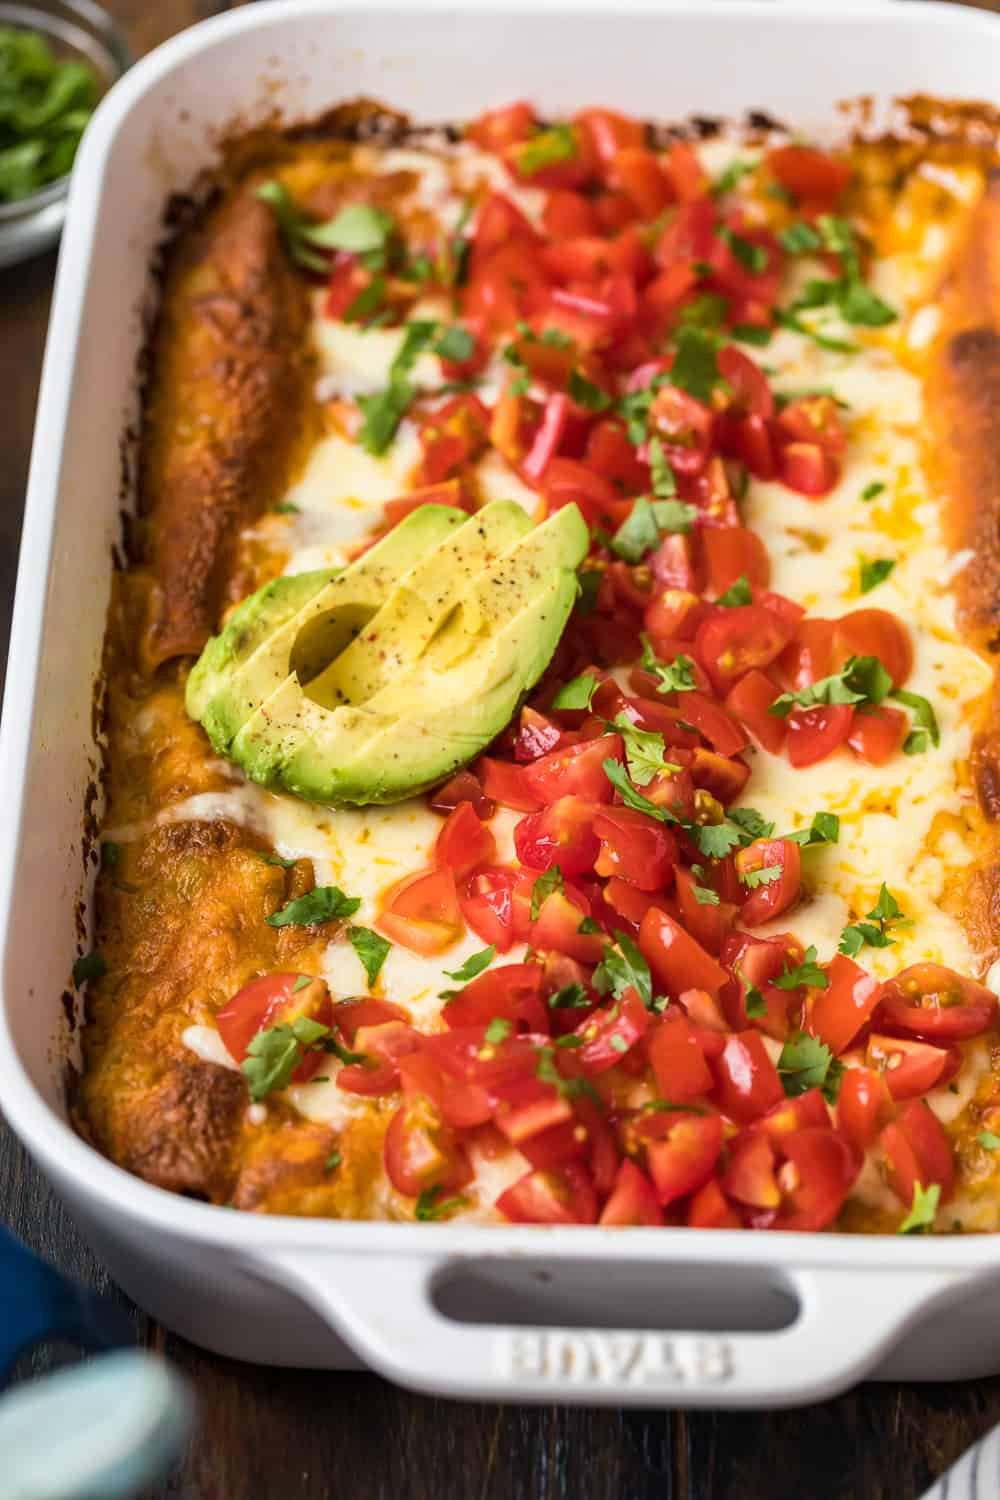 avocado on top of creamy chicken enchiladas